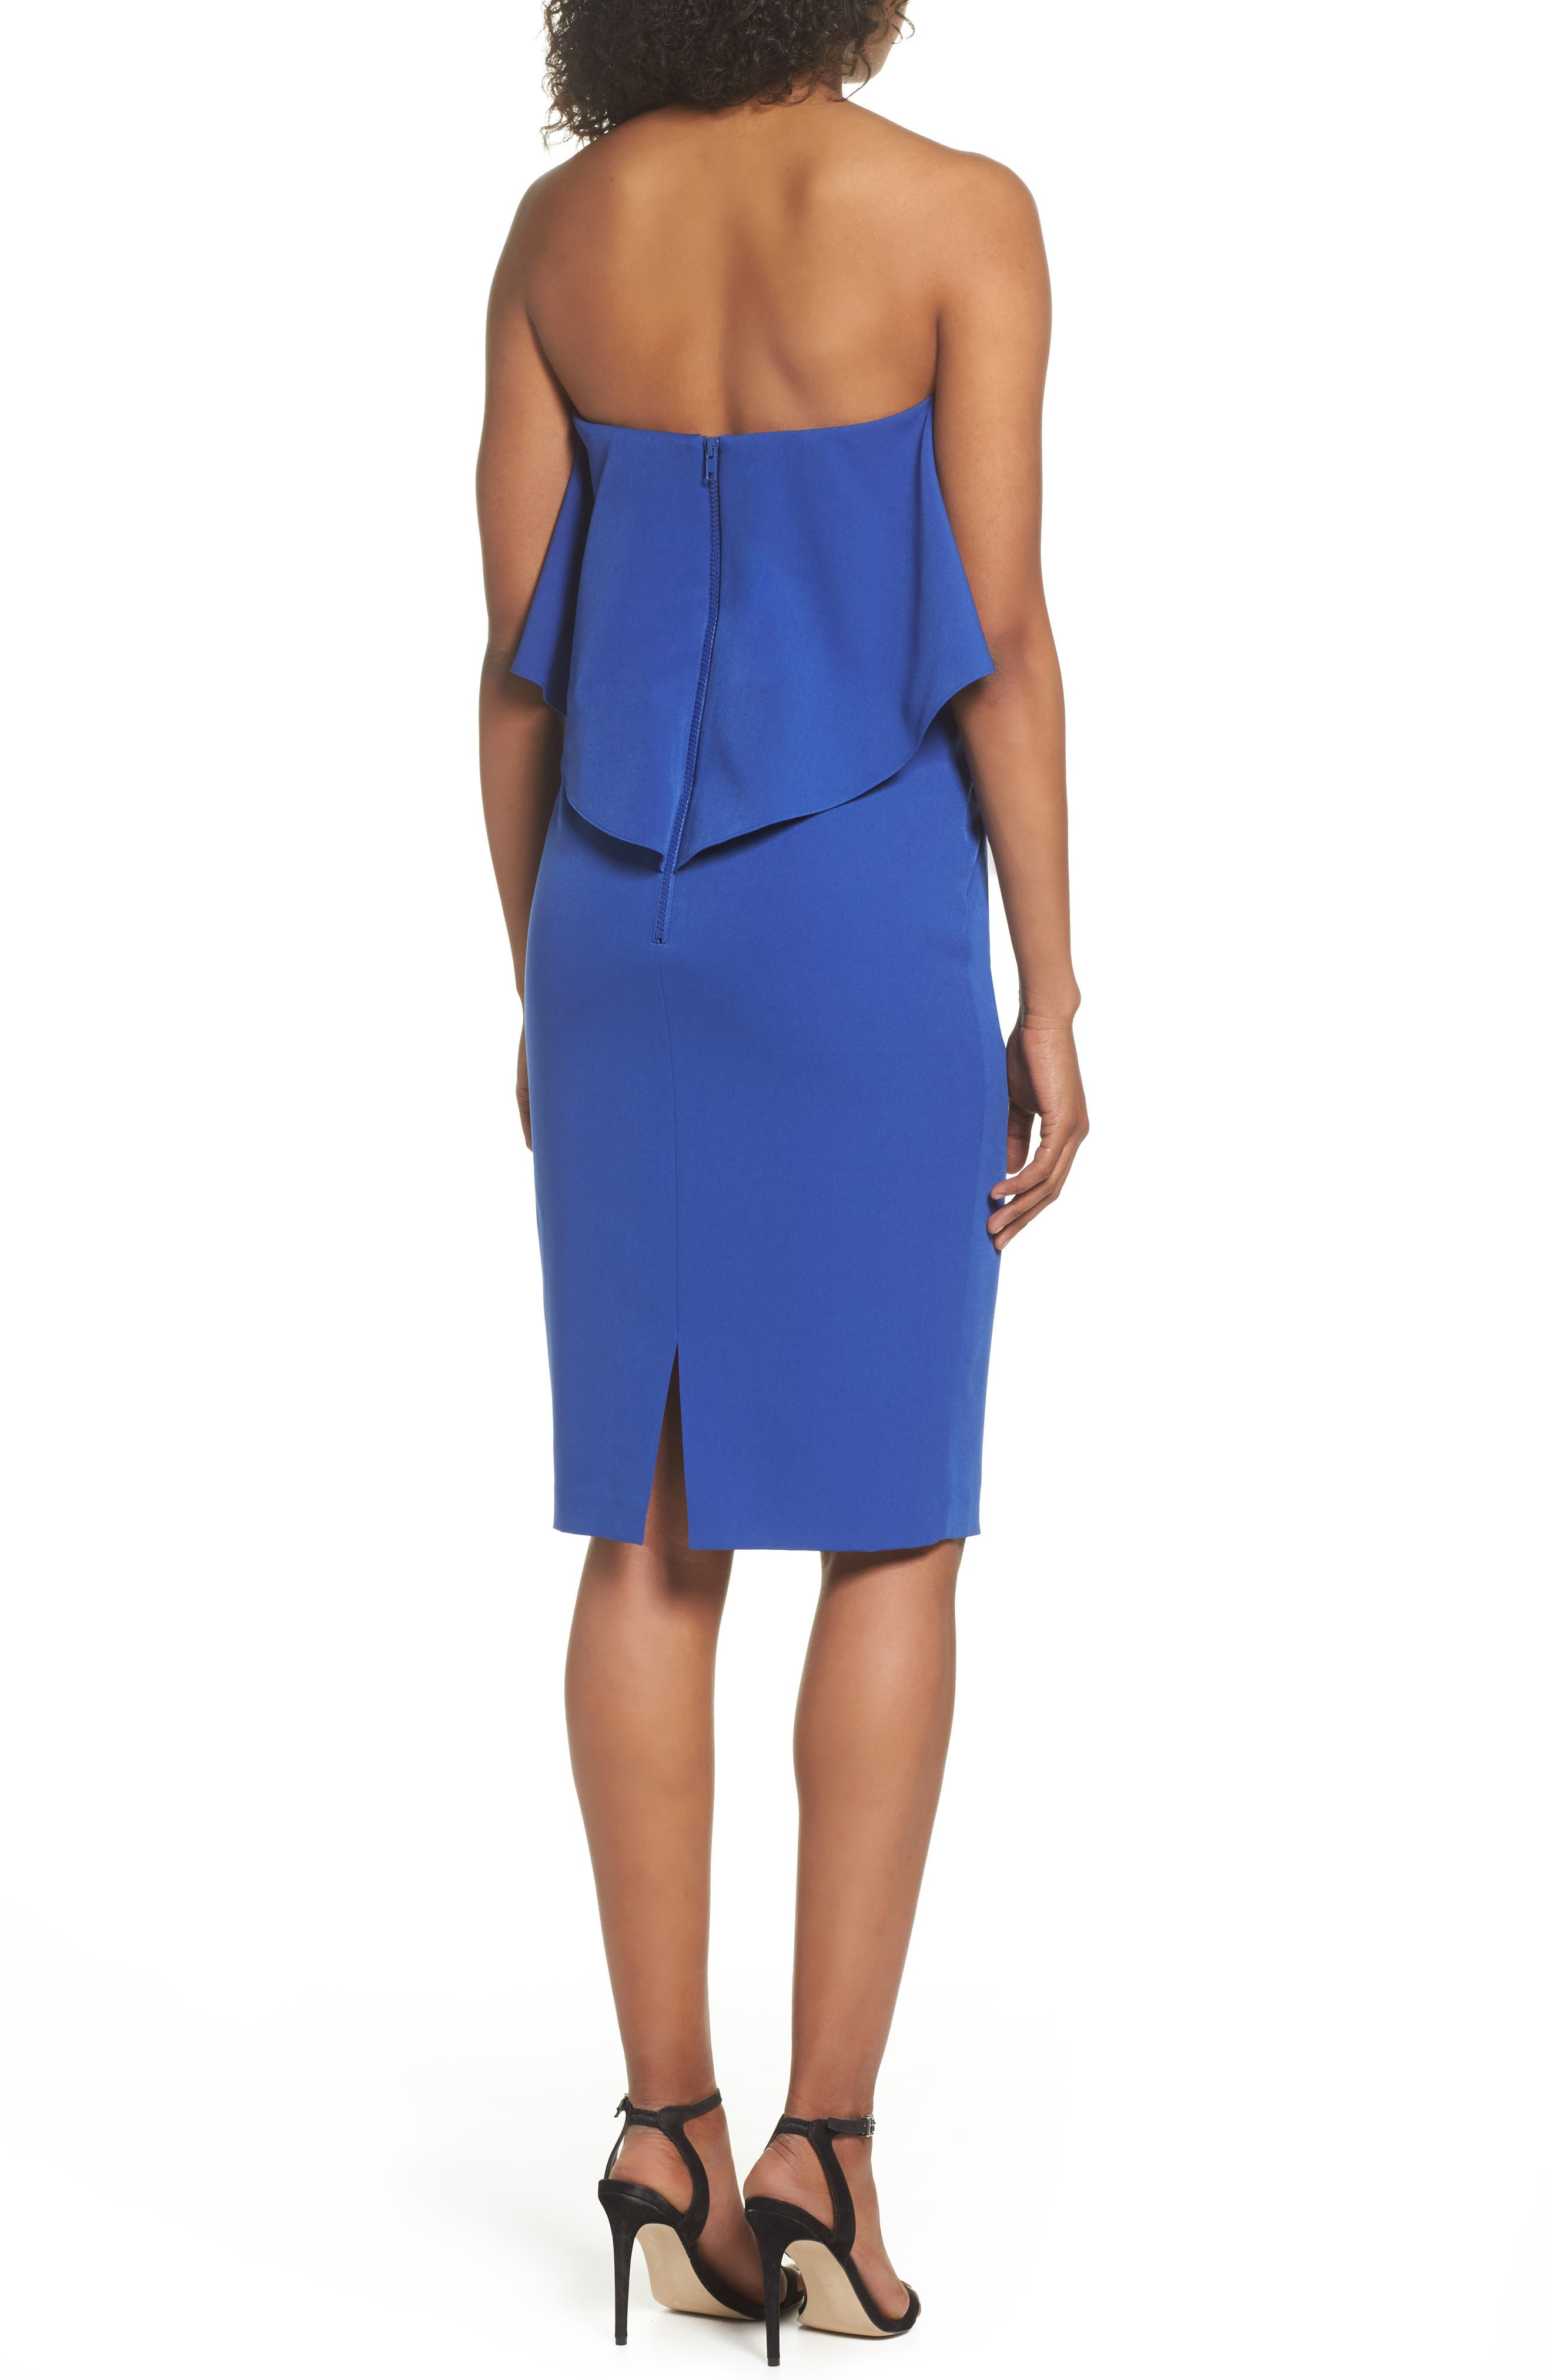 Ruffle Stretch Crepe Sheath Dress,                             Alternate thumbnail 2, color,                             Blue Surf